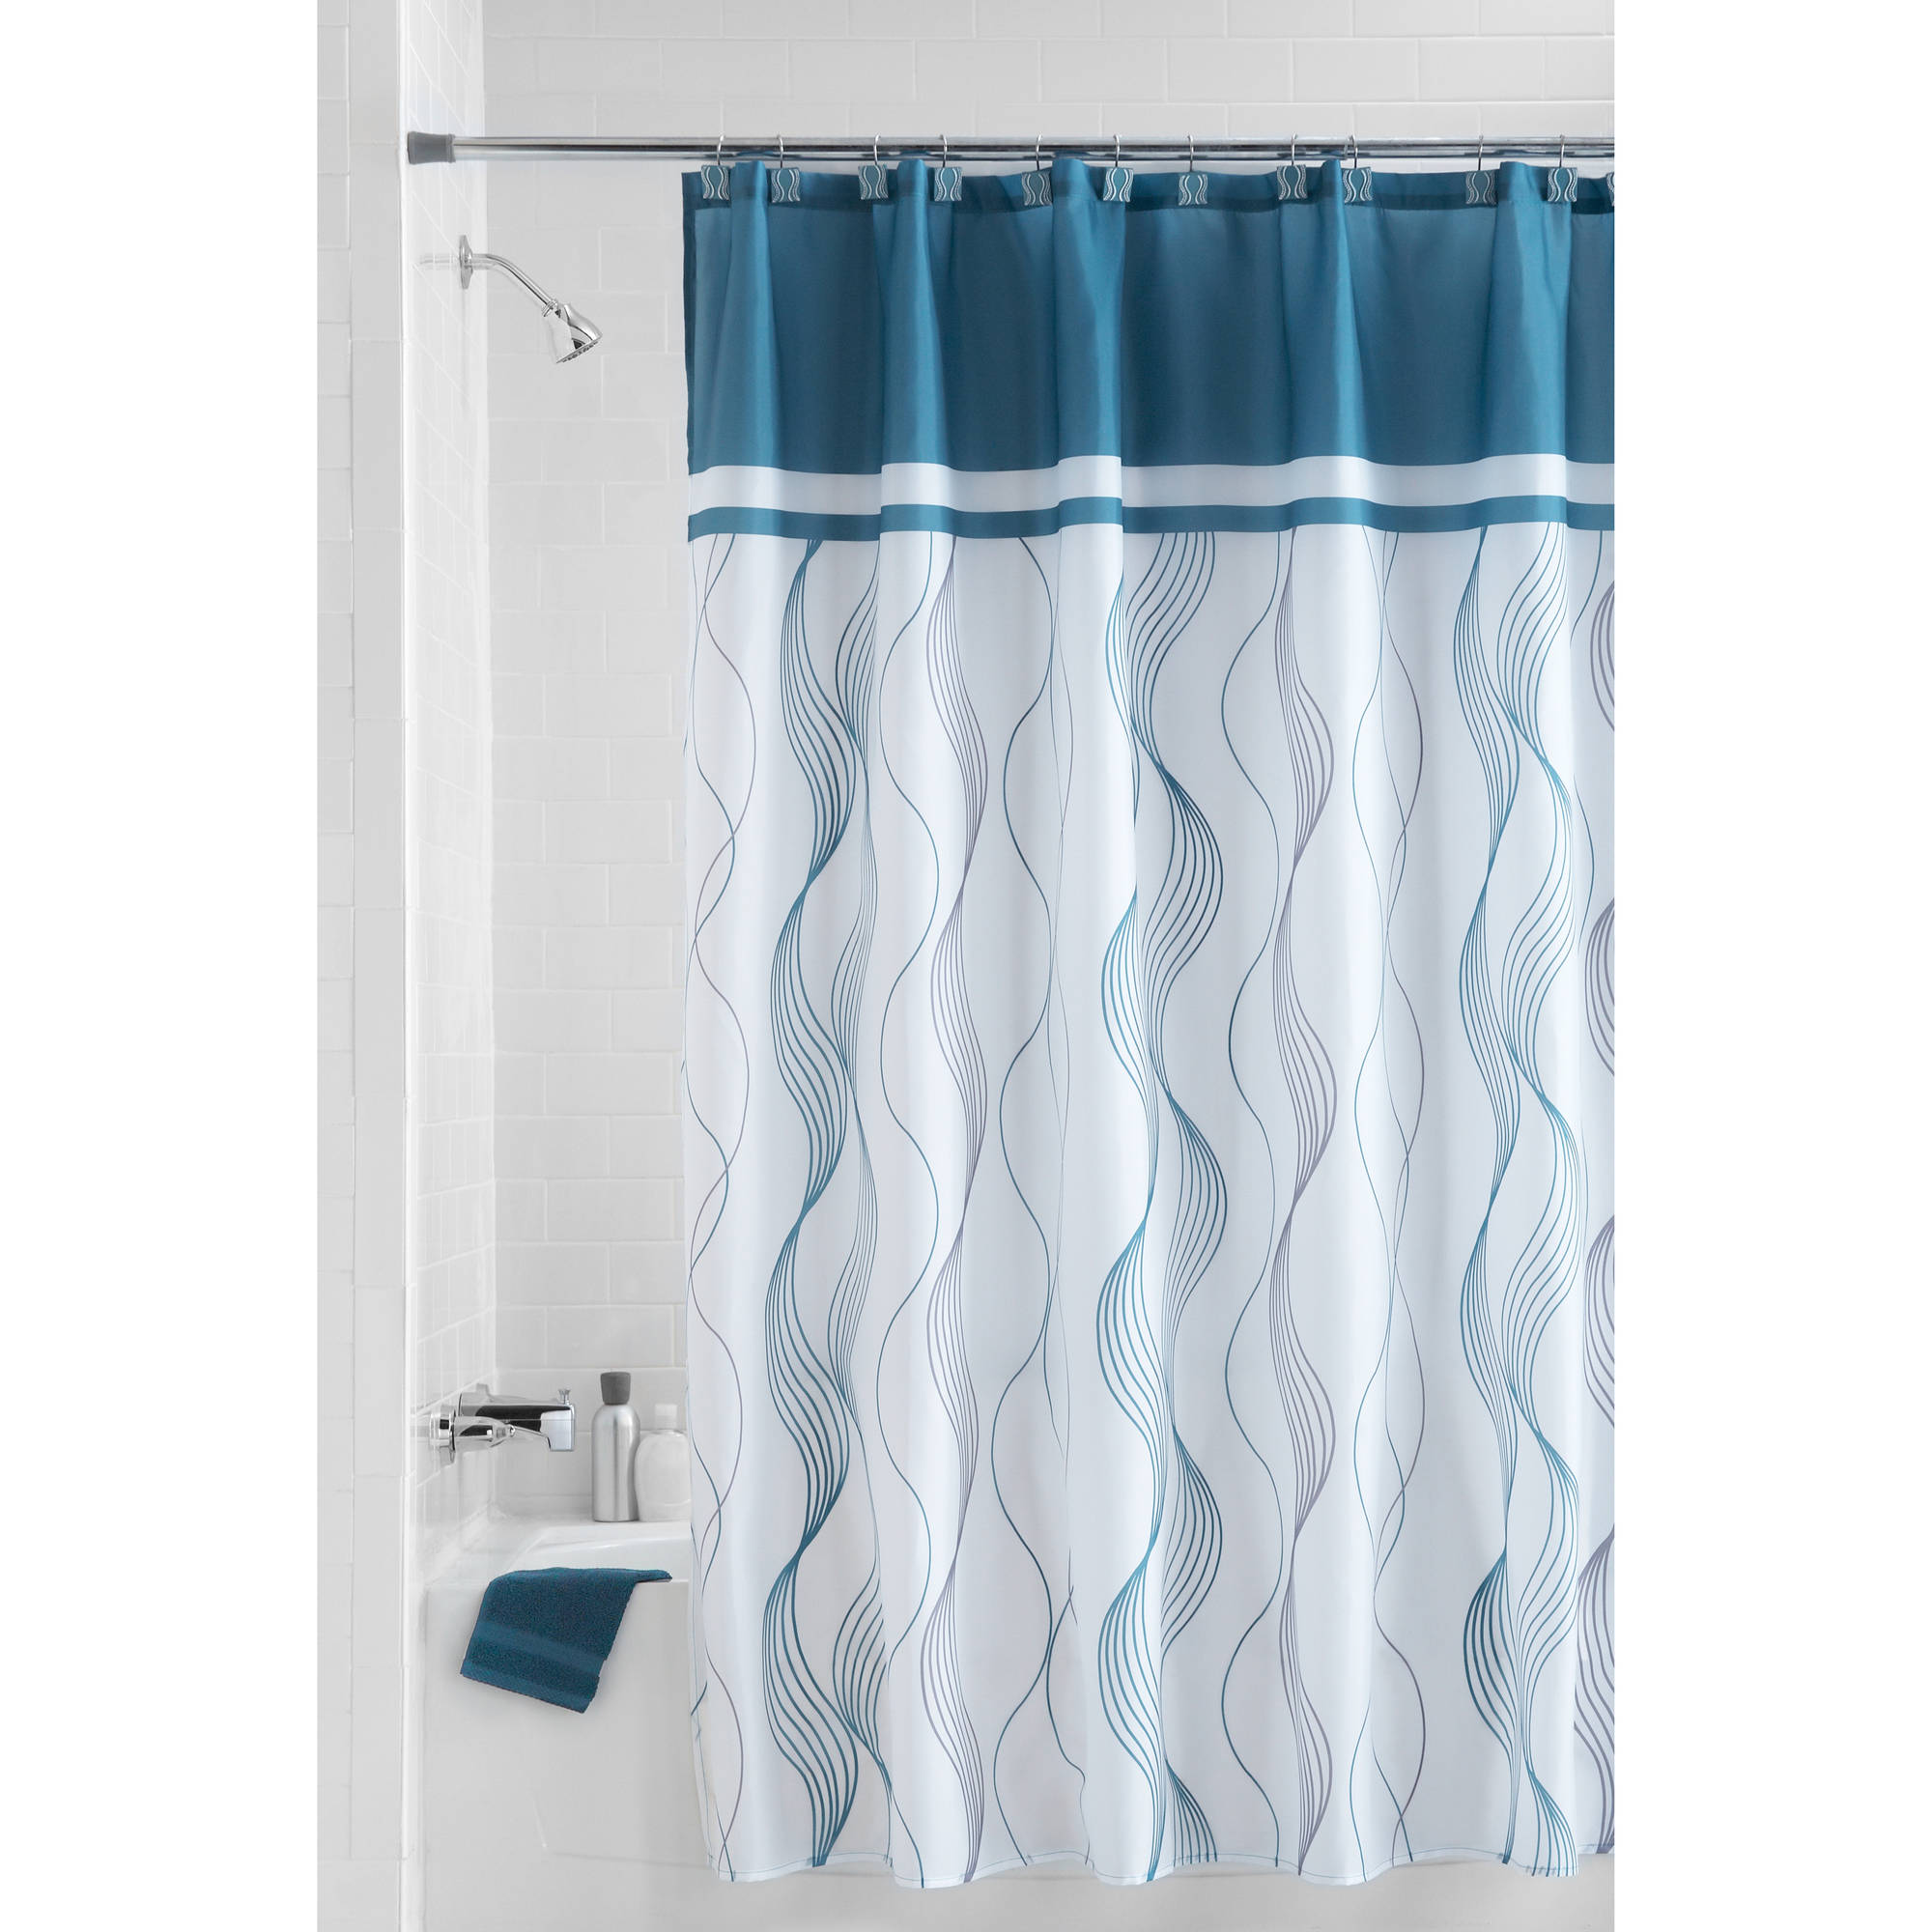 Ikea Shower Curtain | Single Stall Shower Curtain | Ikea Tension Rod